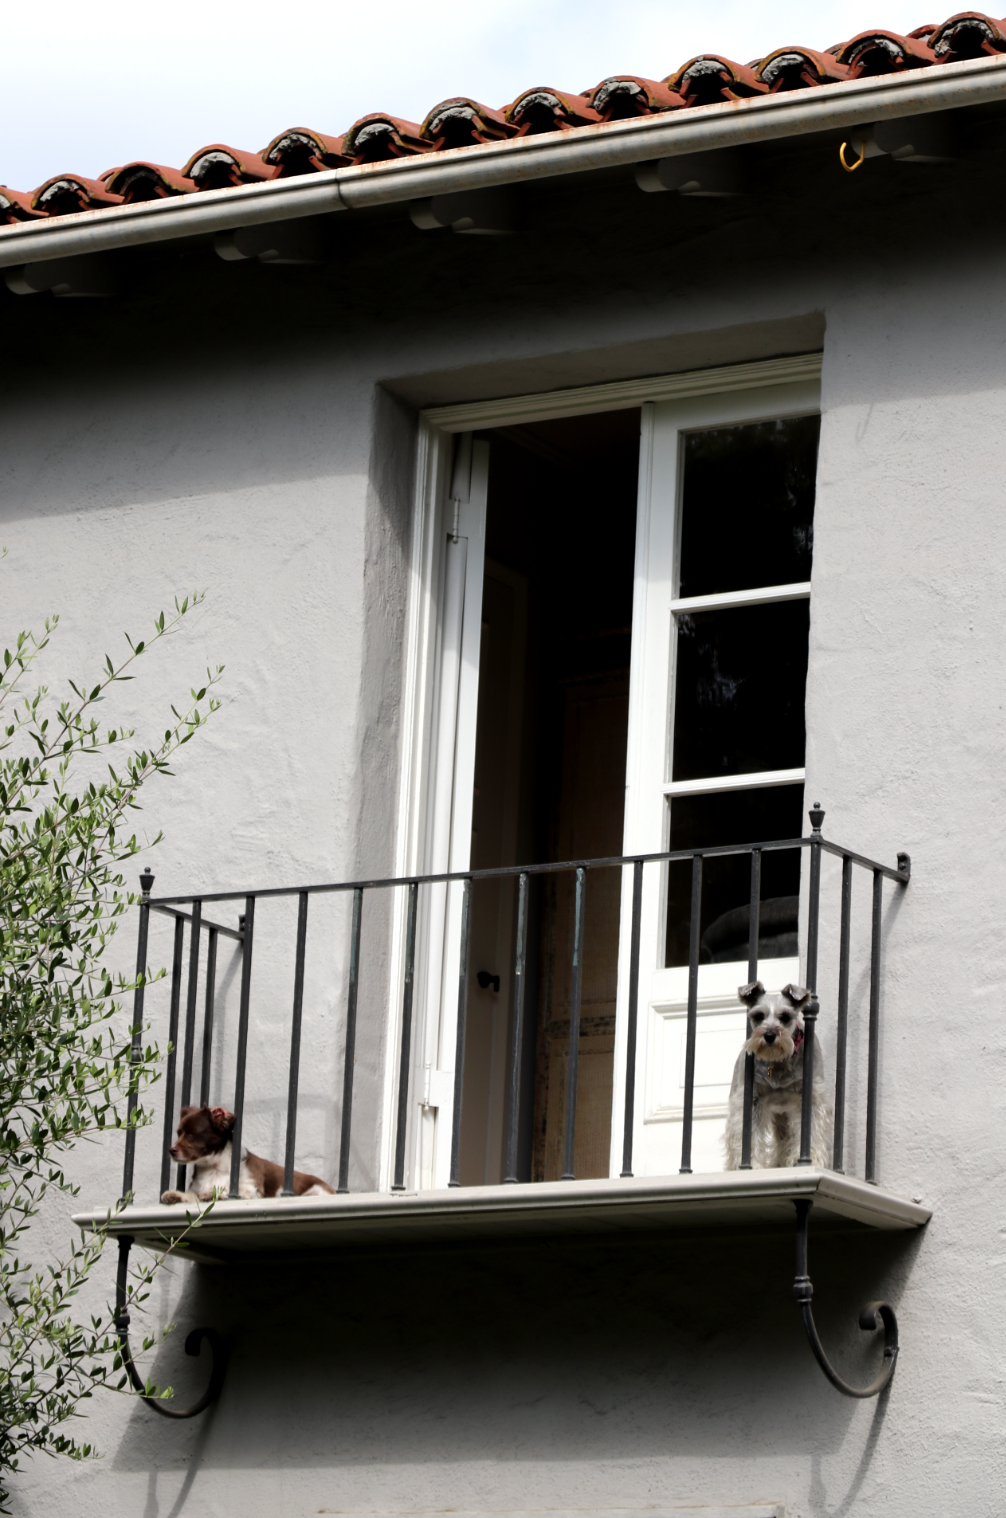 Pups on a Spanish style balcony in Pasadena